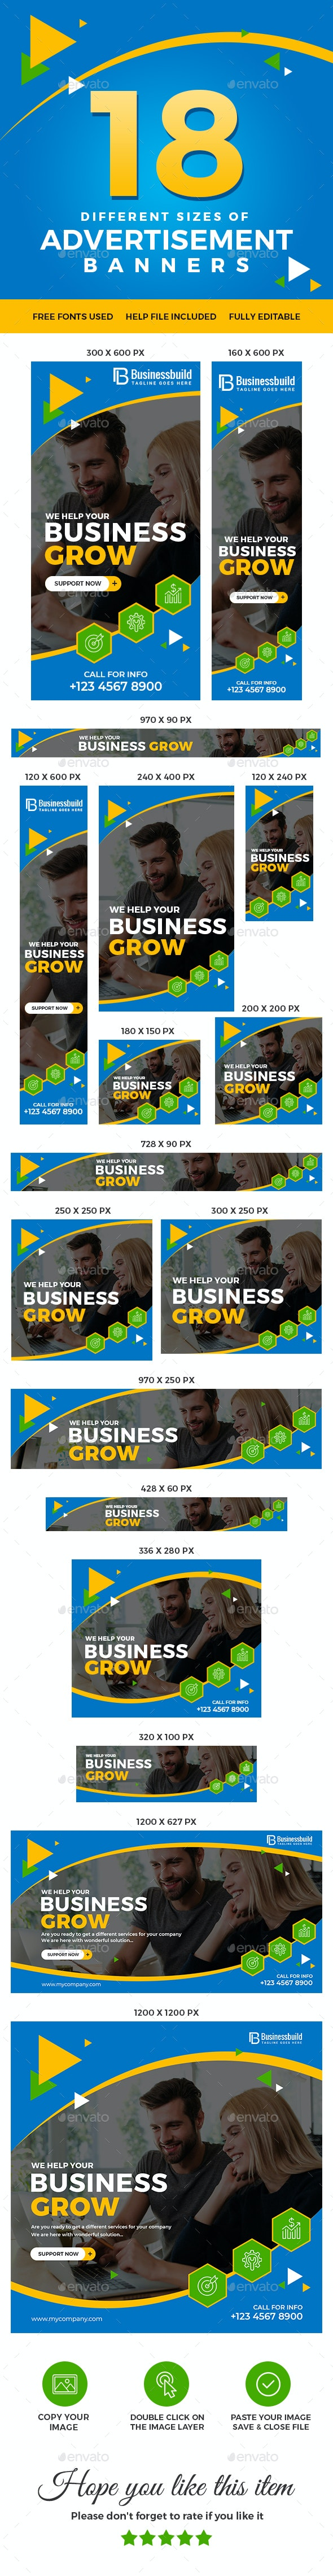 Advertising Web Banner Set - Banners & Ads Web Elements